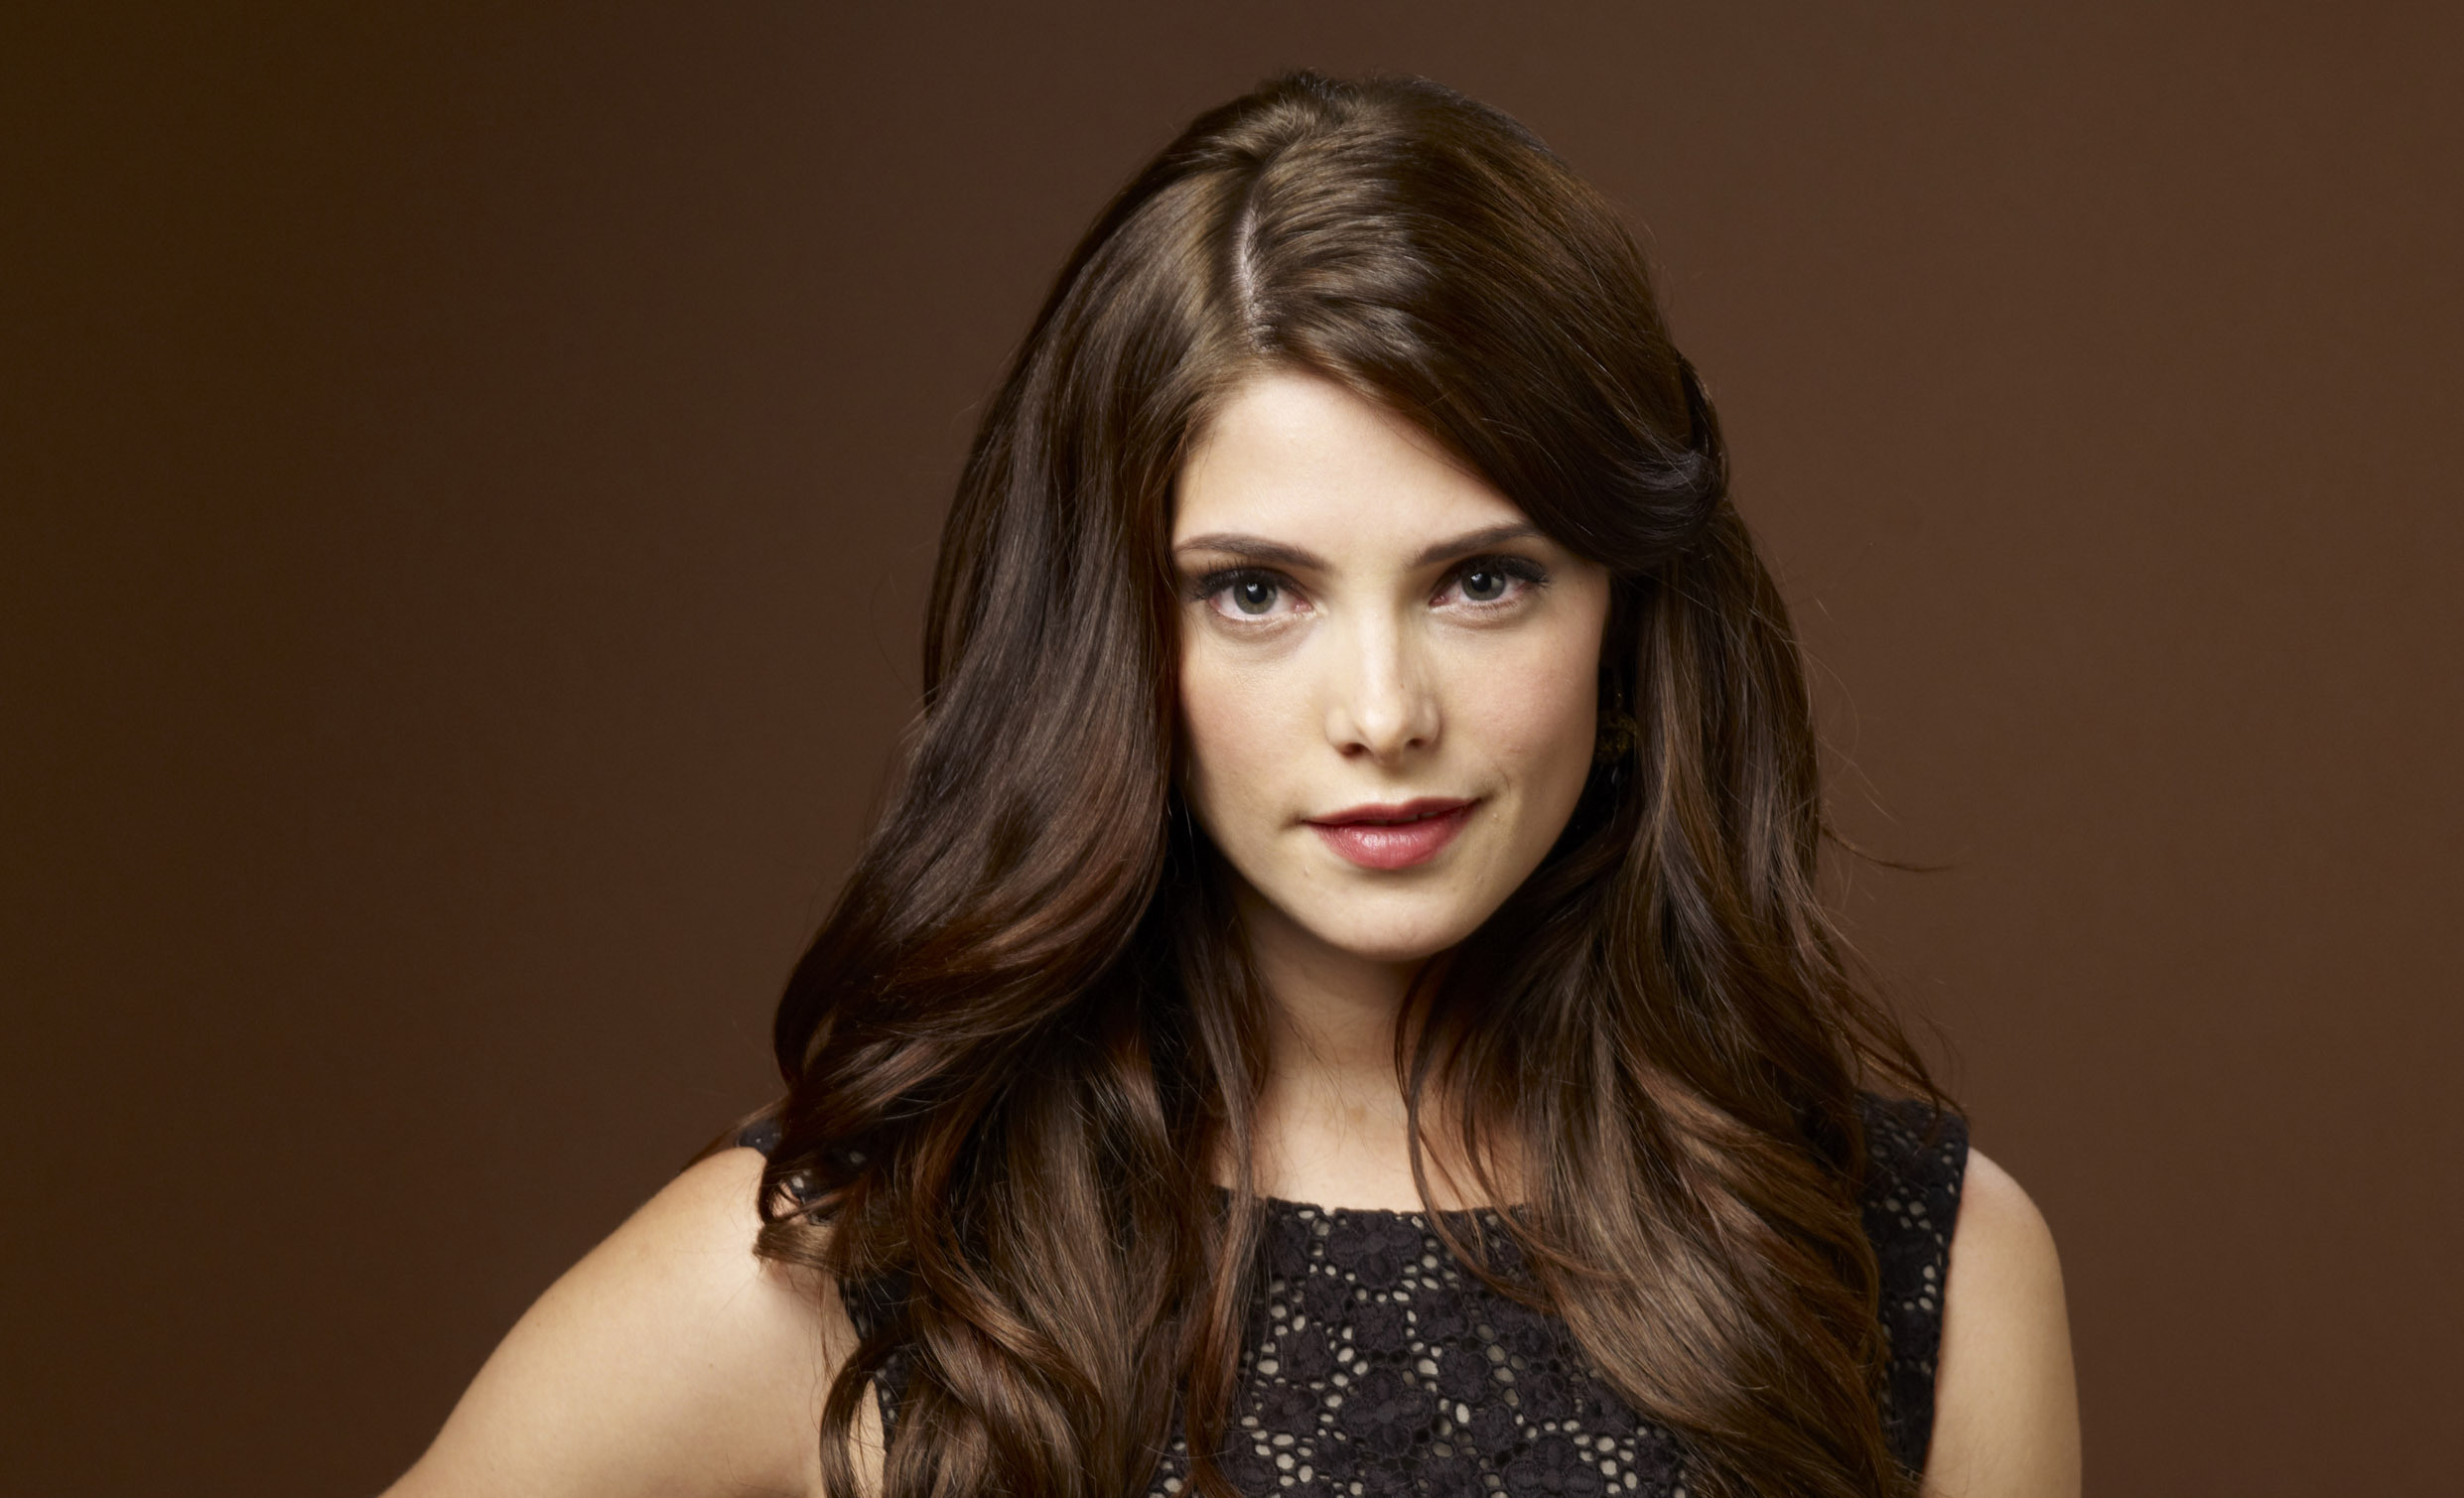 Star Celebrity Wallpapers Ashley Greene Hd Wallpapers: Ashley Greene Computer Wallpapers, Desktop Backgrounds